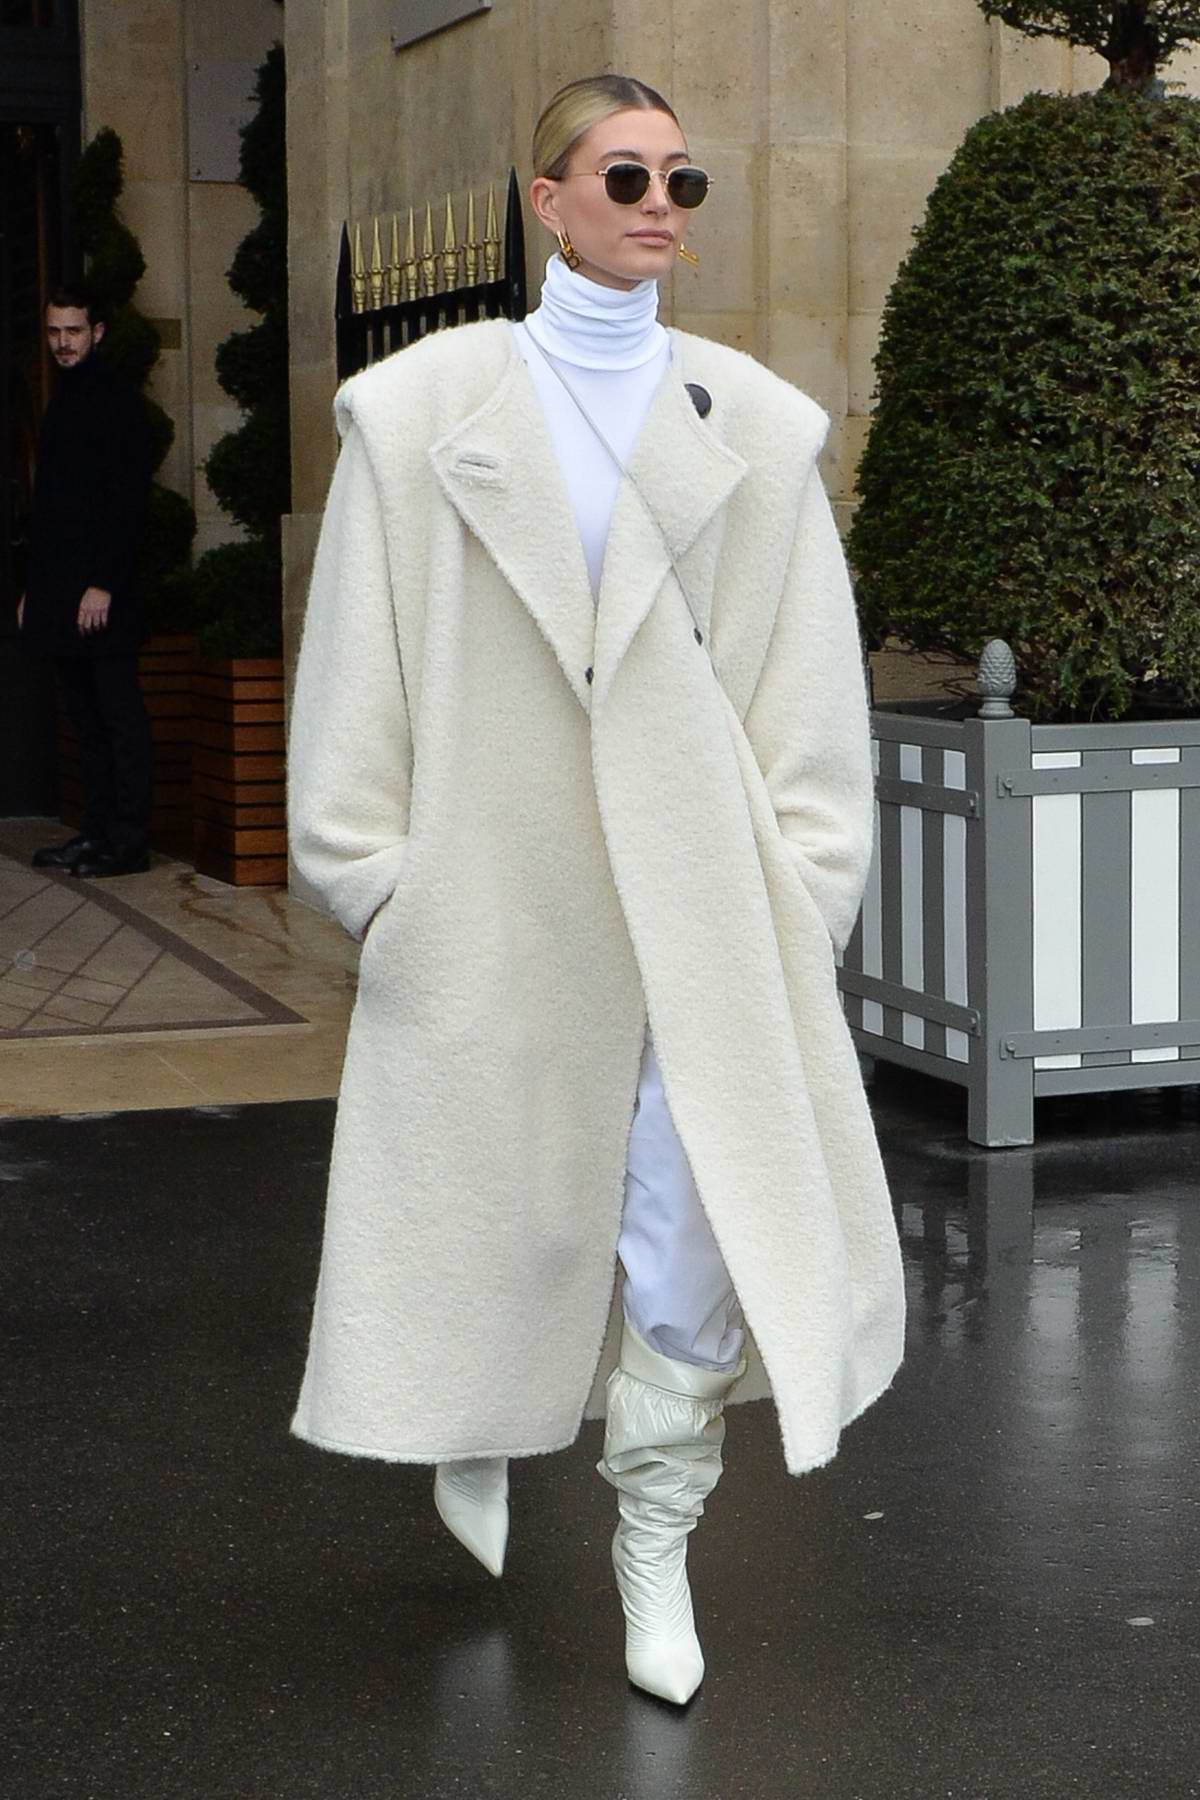 Hailey Bieber looks posh as she leaves her hotel during Paris Fashion Week 2020 in Paris, France